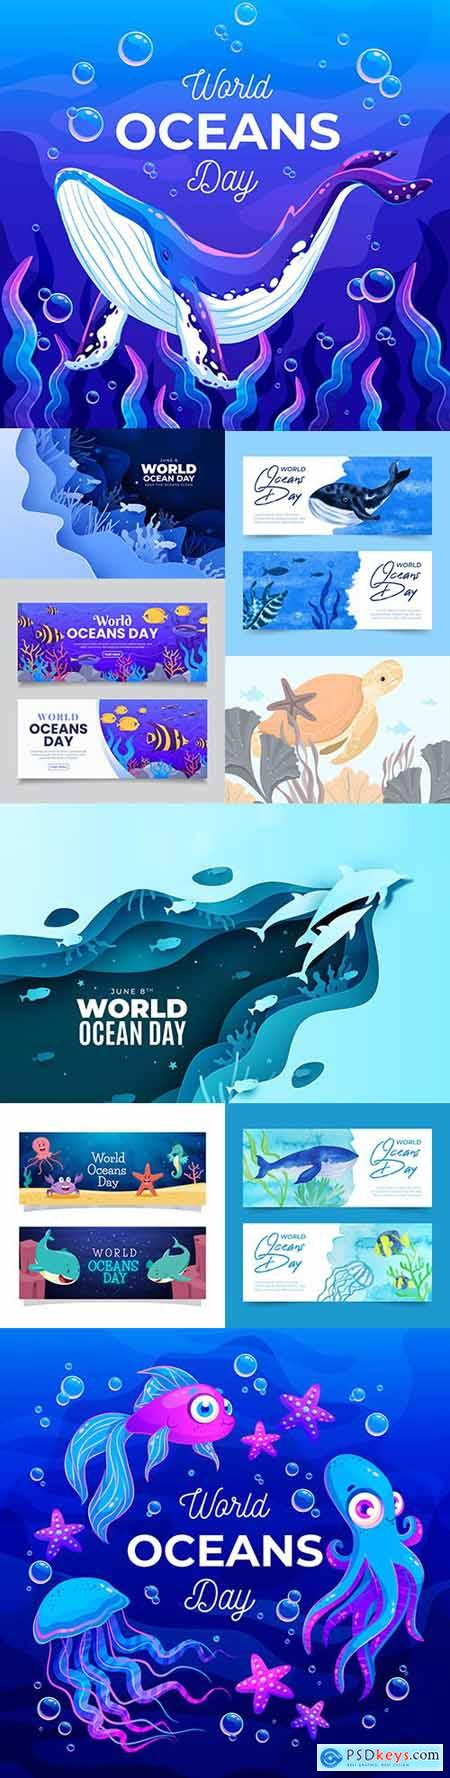 World ocean day with marine dwellers cartoon illustrations